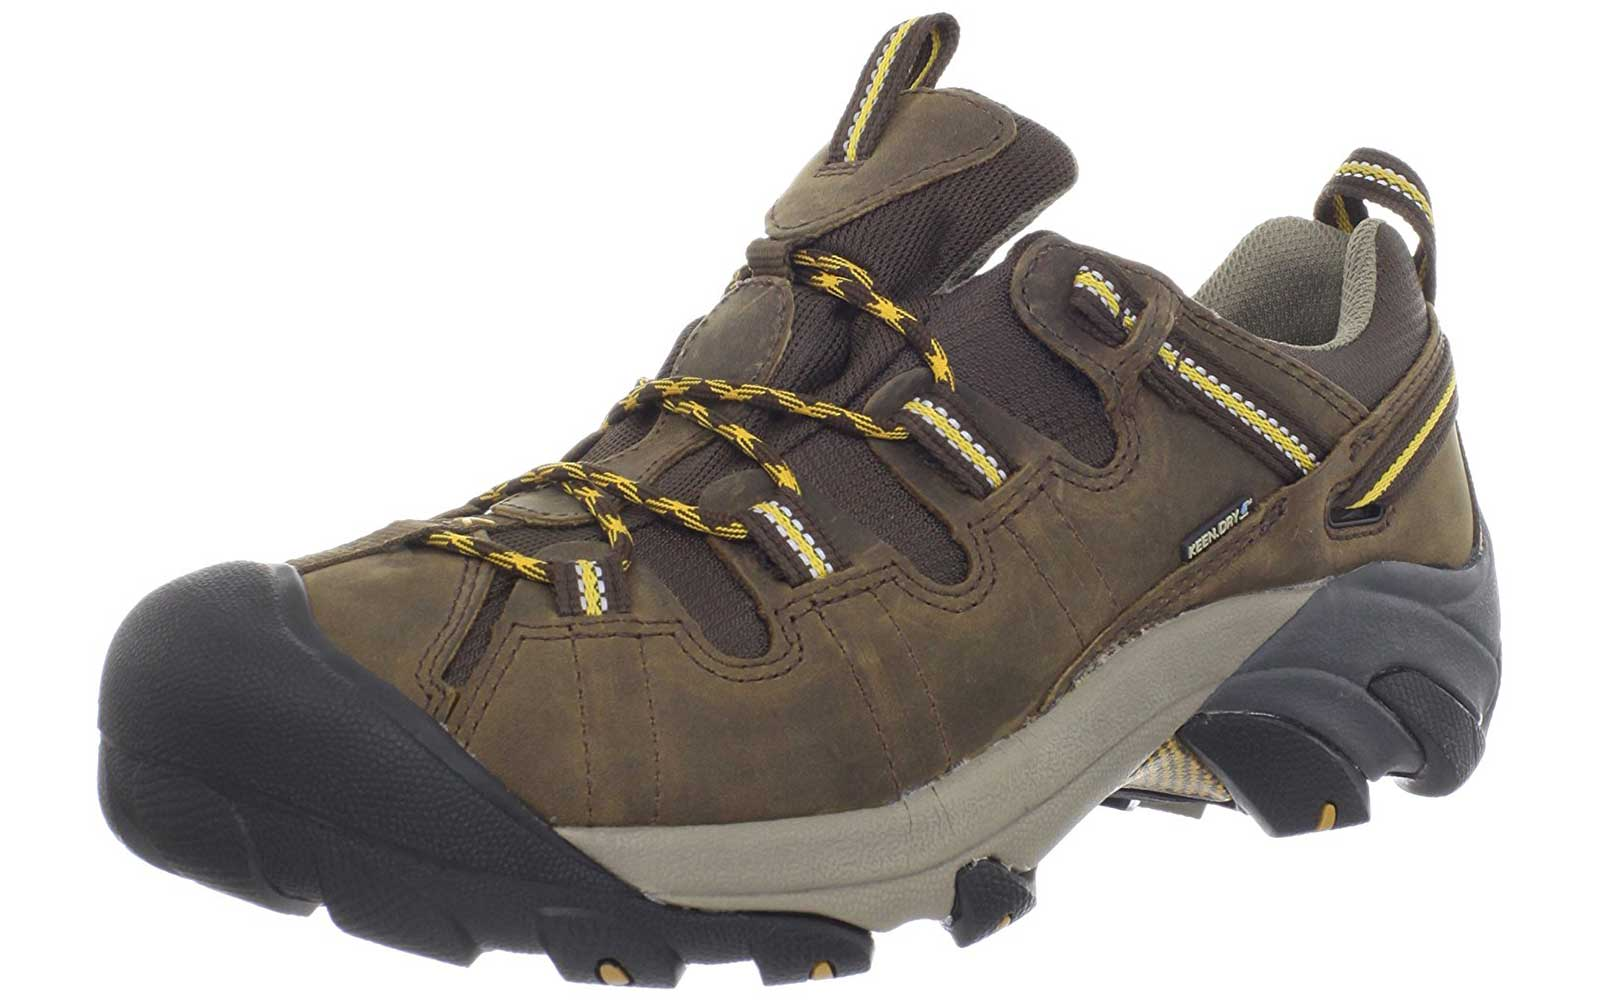 13bb72d83f12b The 10 Best Hiking Shoes on Amazon | Travel + Leisure